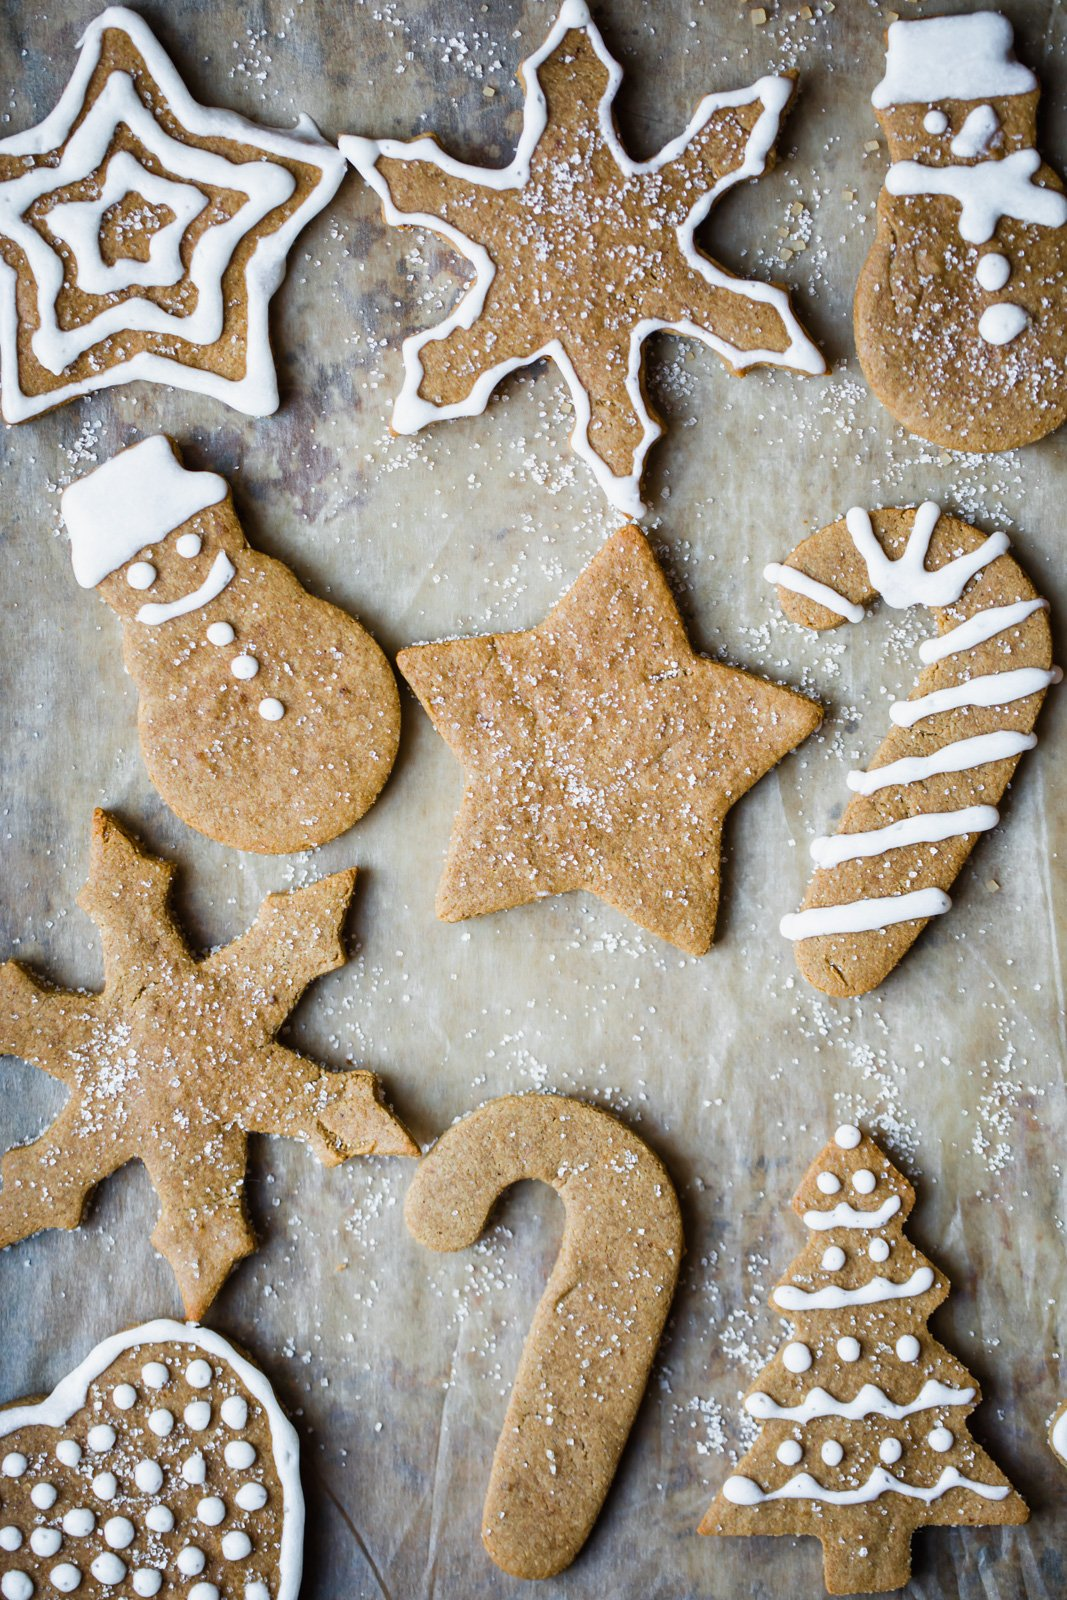 almond flour recipes: paleo gingerbread cookies cut into shapes